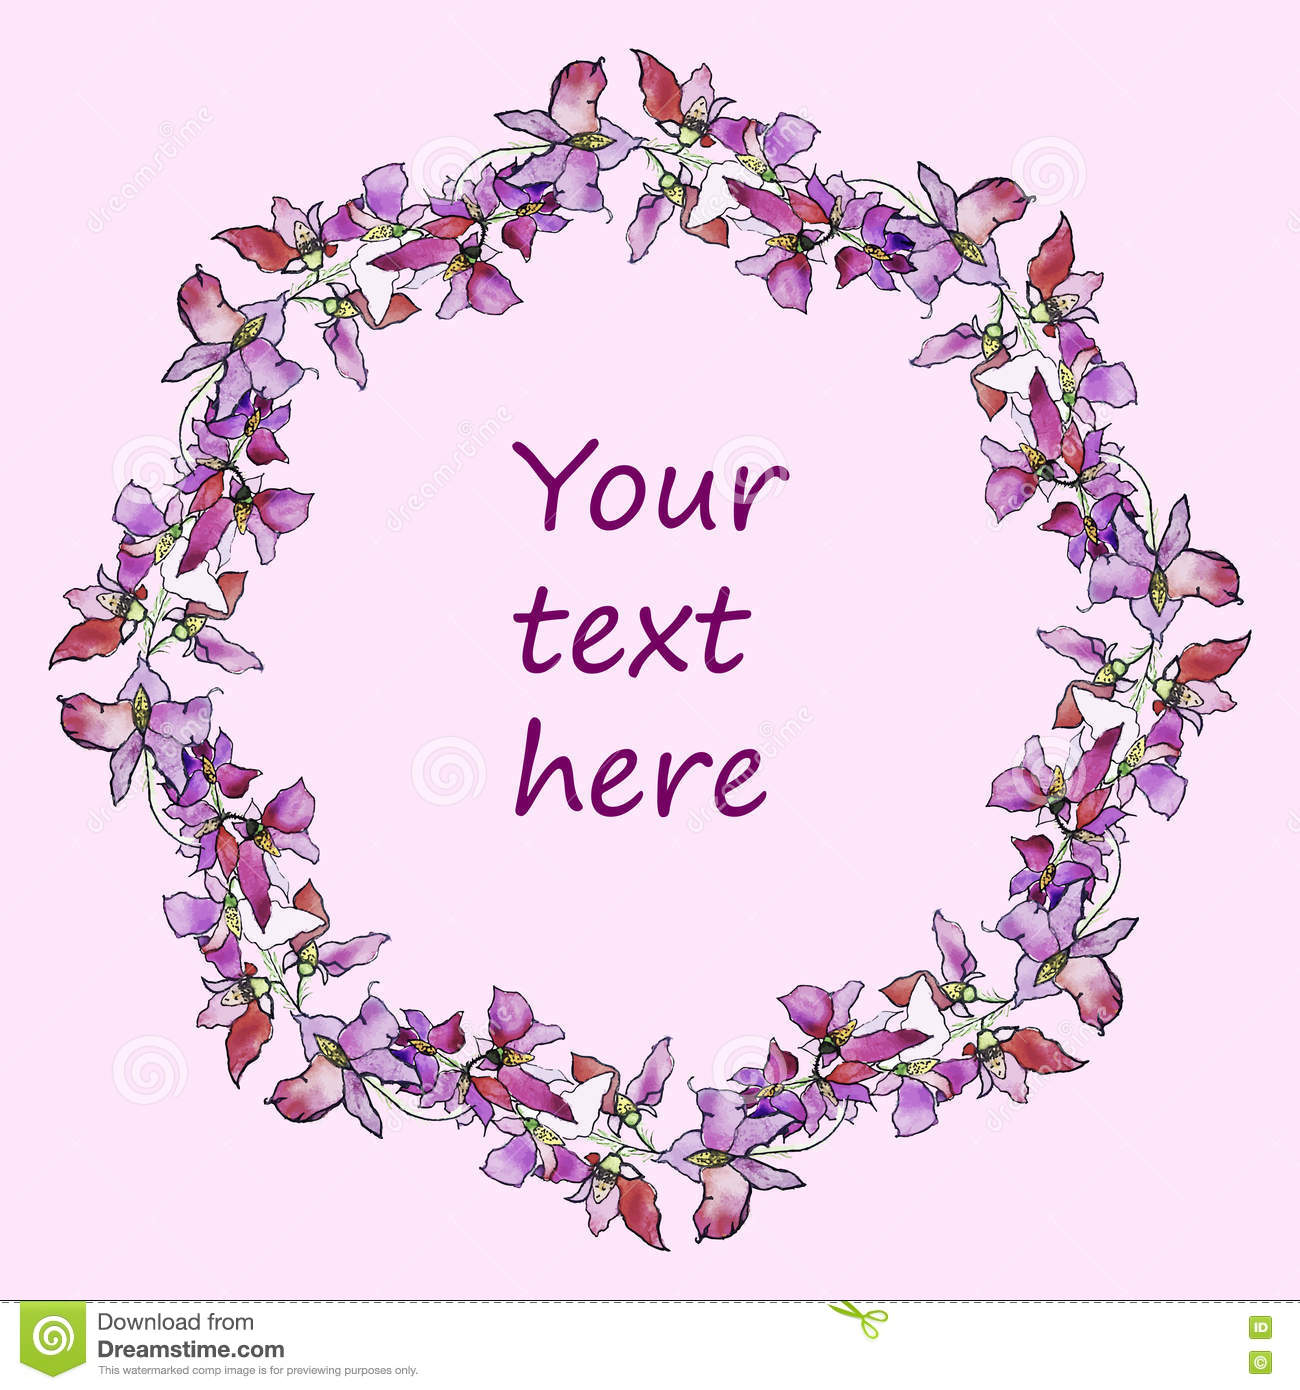 Watercolor Pink Floral Wreath, Hand Drawn Flower Flame Clip Art.